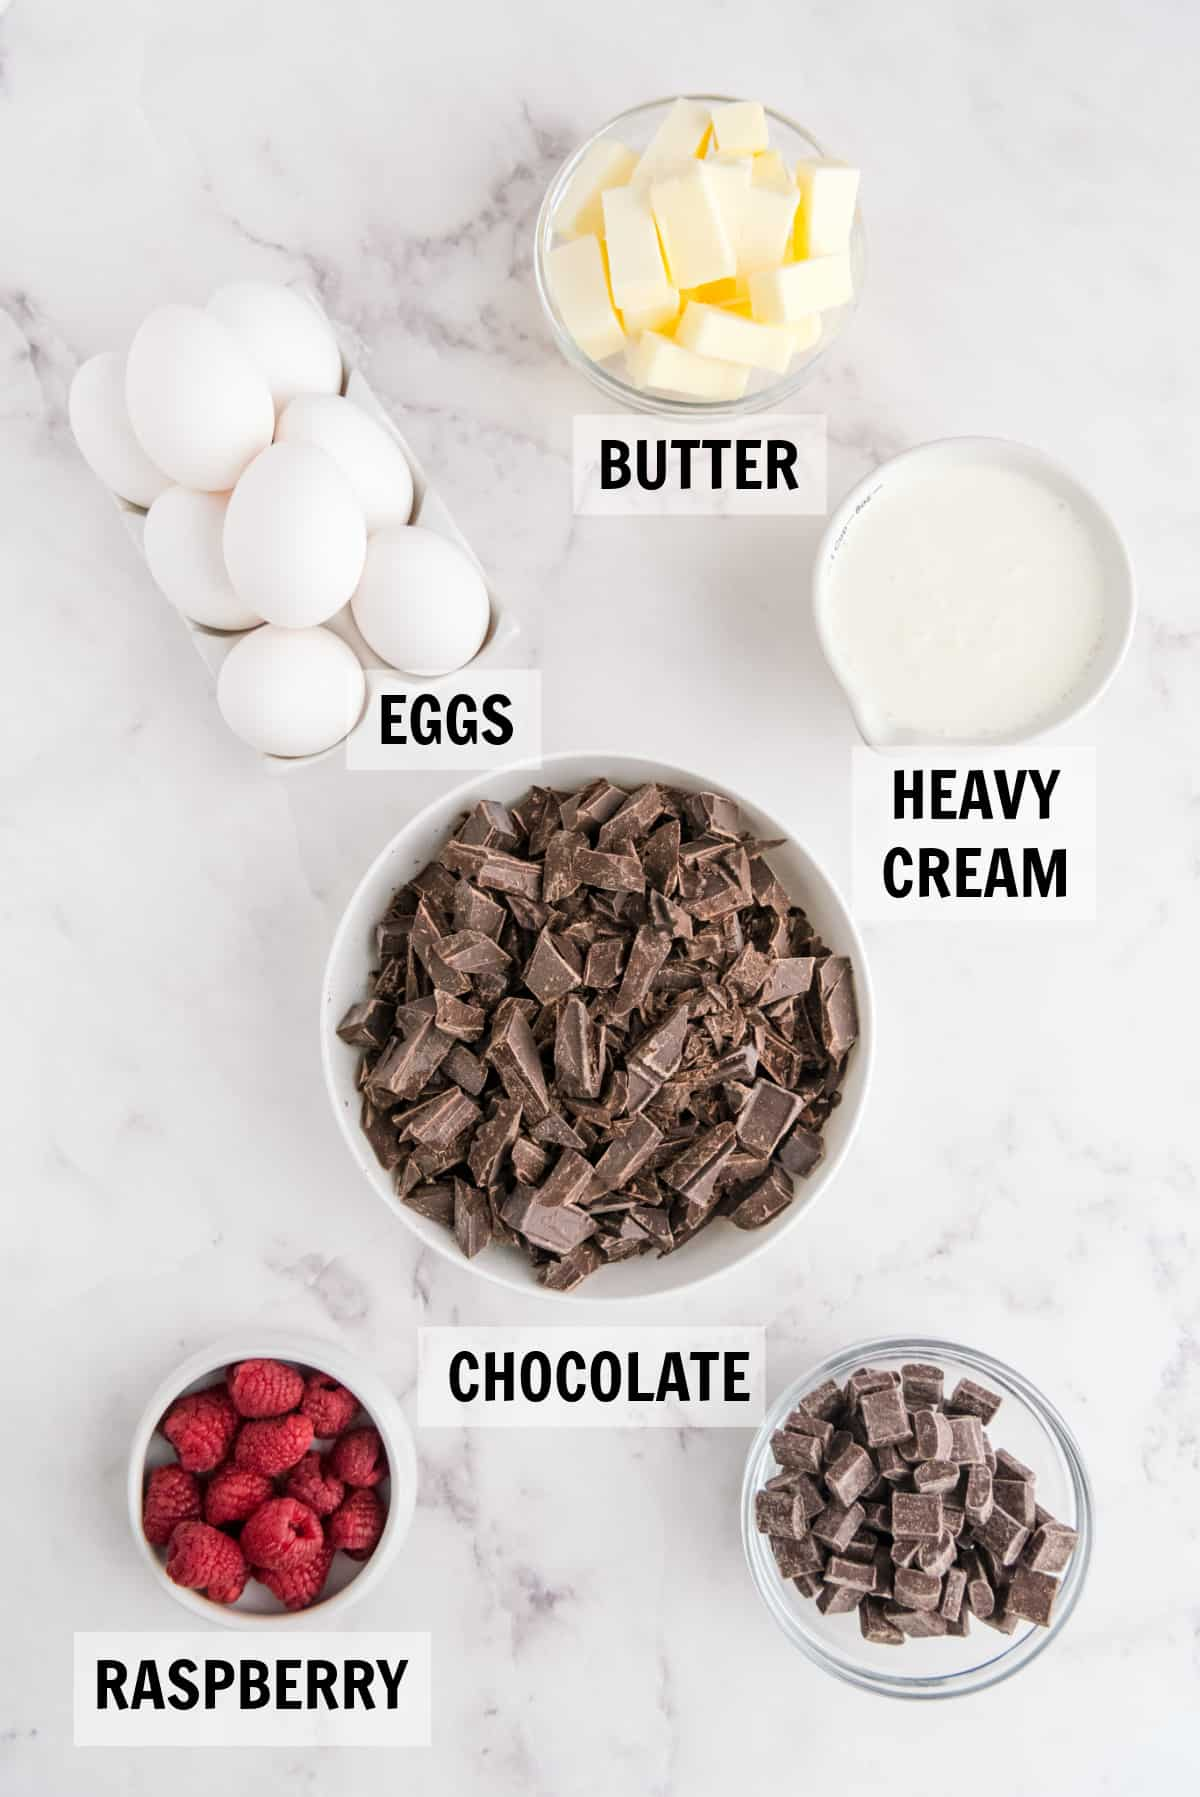 ingredients for flourless chocolate cake on counter